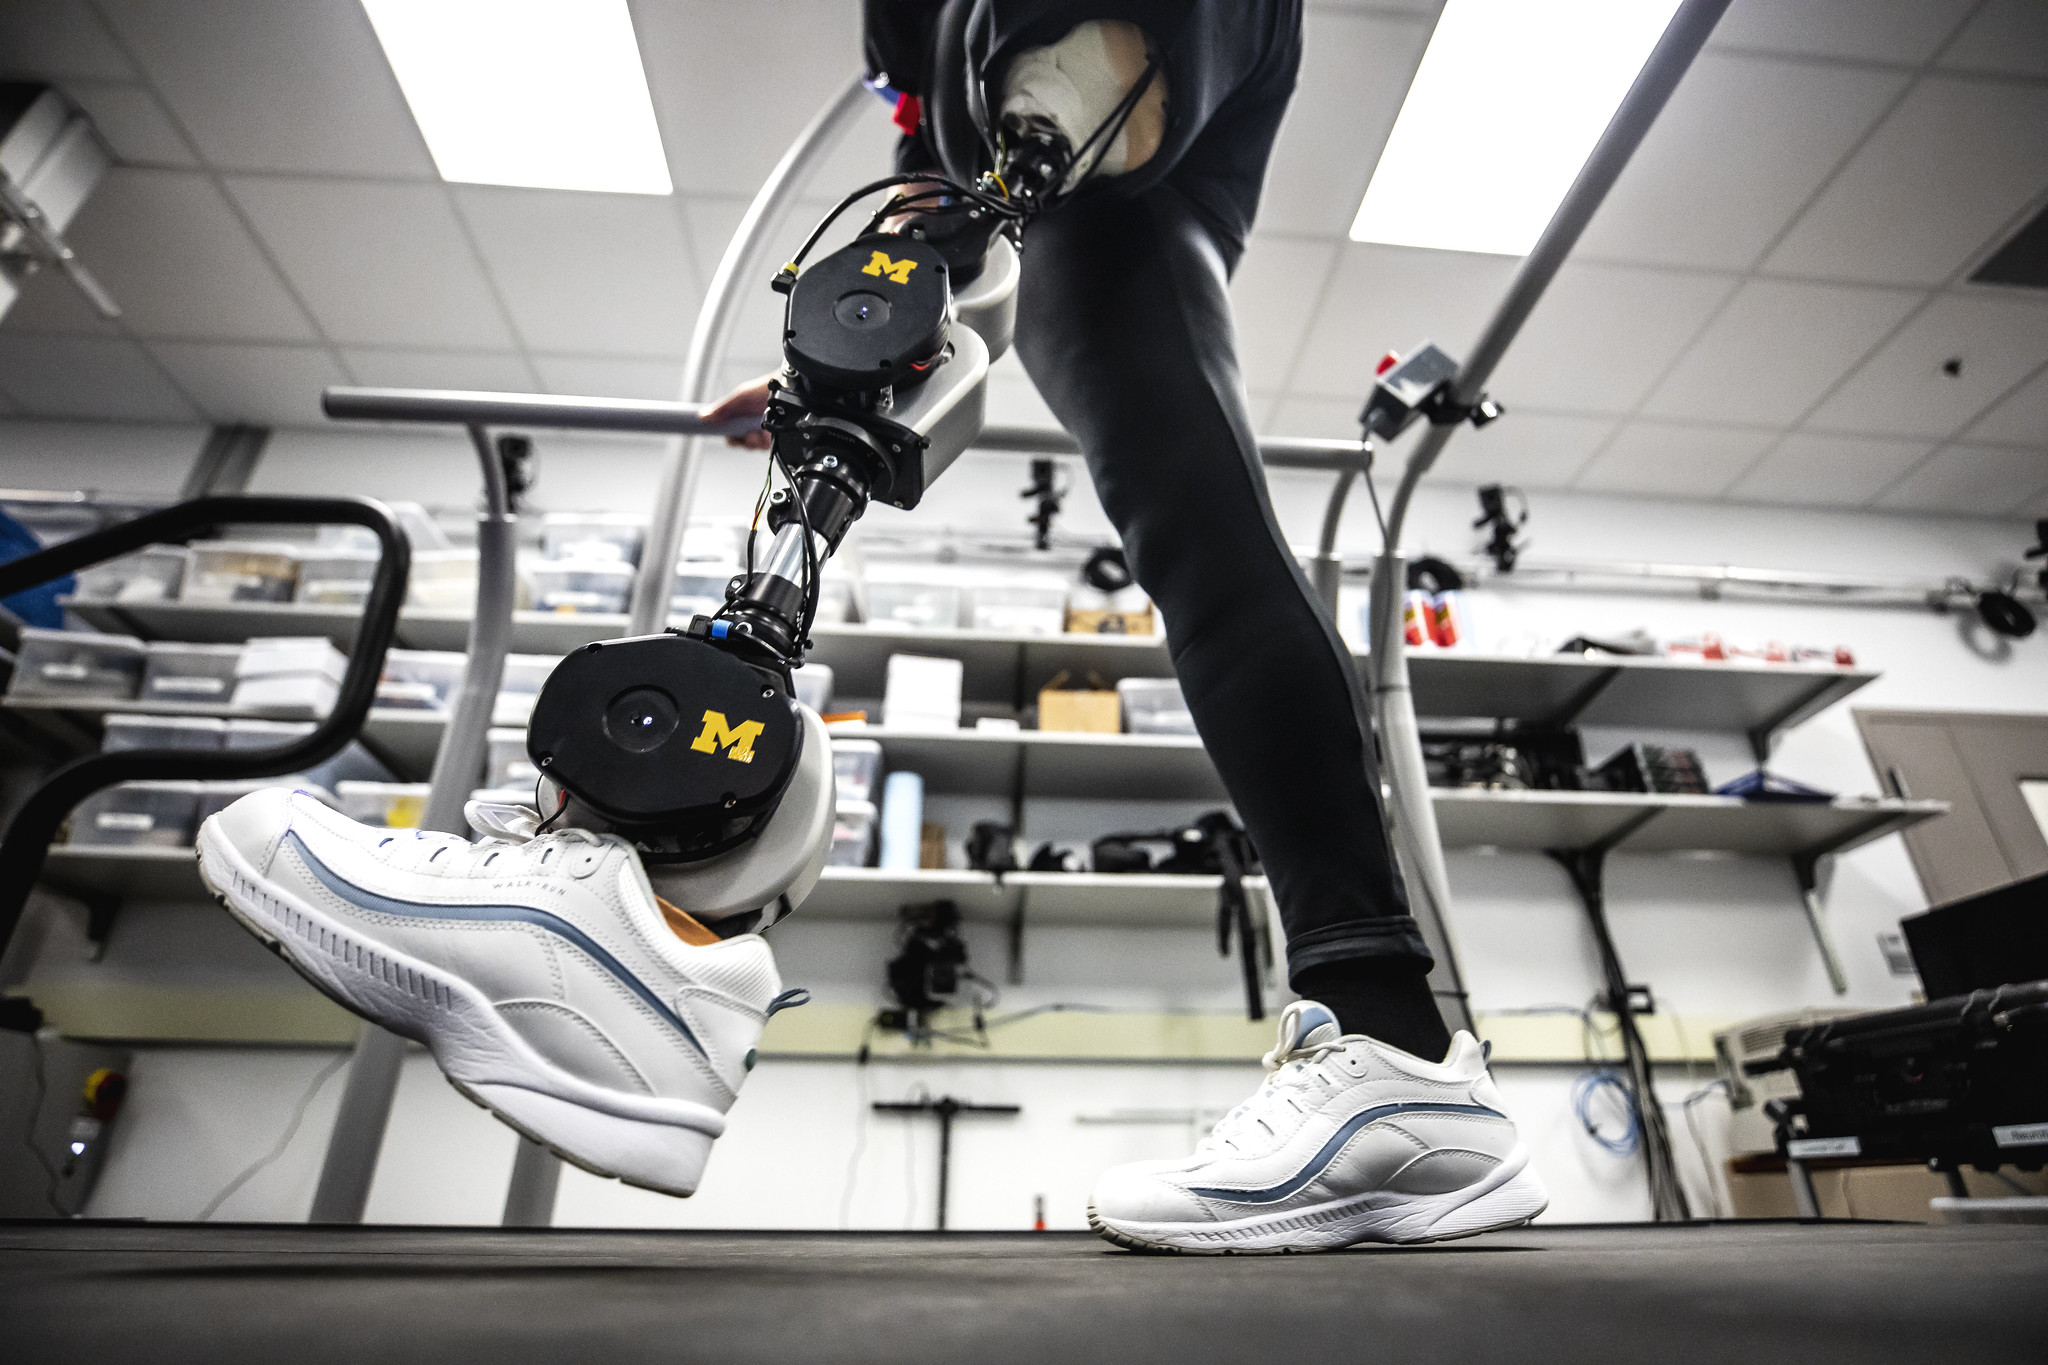 User testing an open-source robotic leg